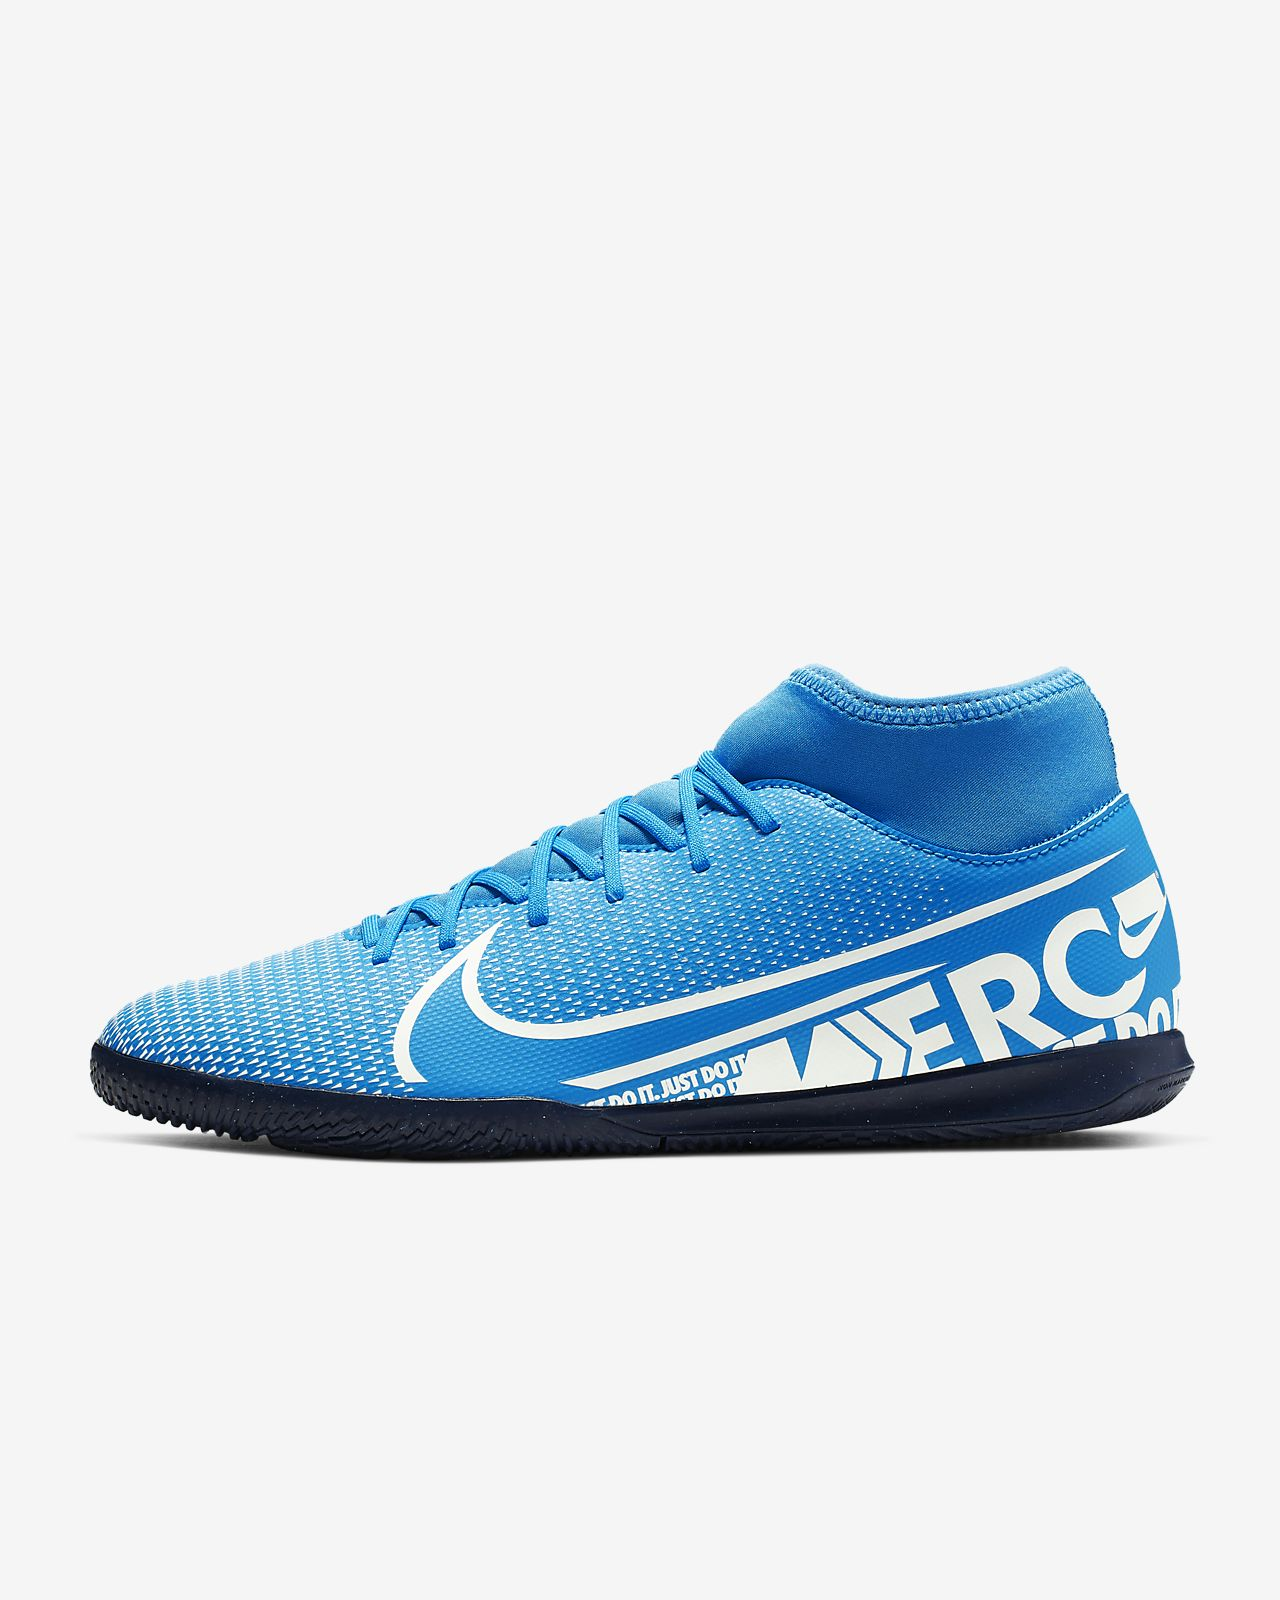 Chaussure de football en salle Nike Mercurial Superfly 7 Club IC